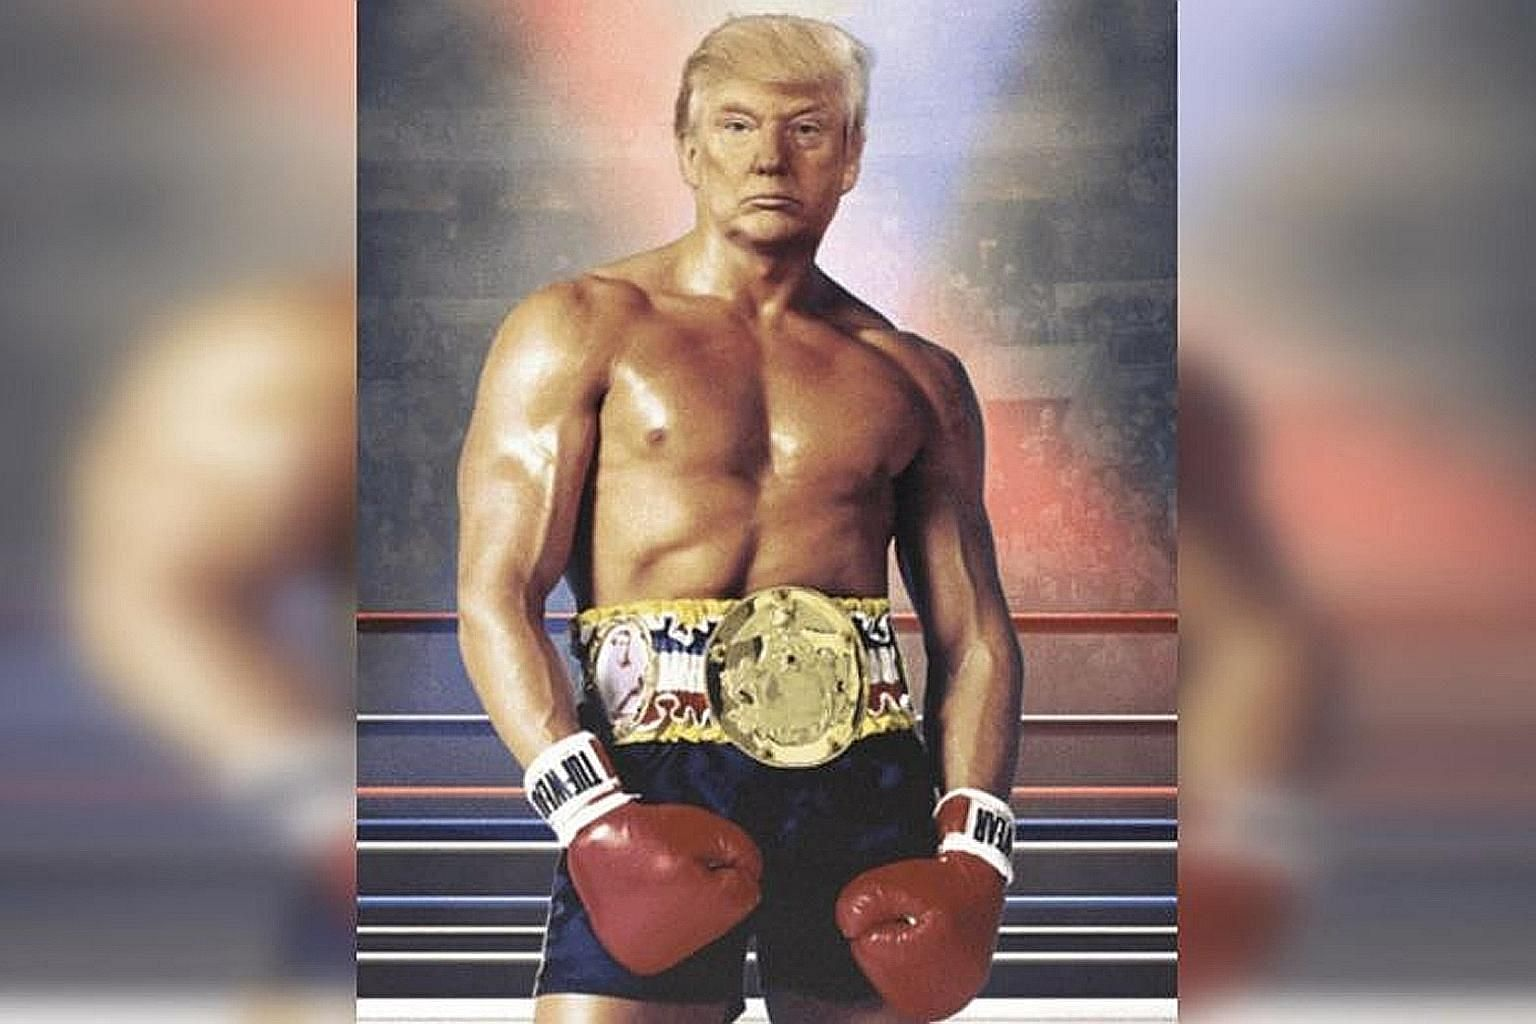 US President Donald Trump posted an image of his head superimposed on the muscular body of Rocky Balboa, a fictional boxer from the movie series Rocky, on Wednesday.